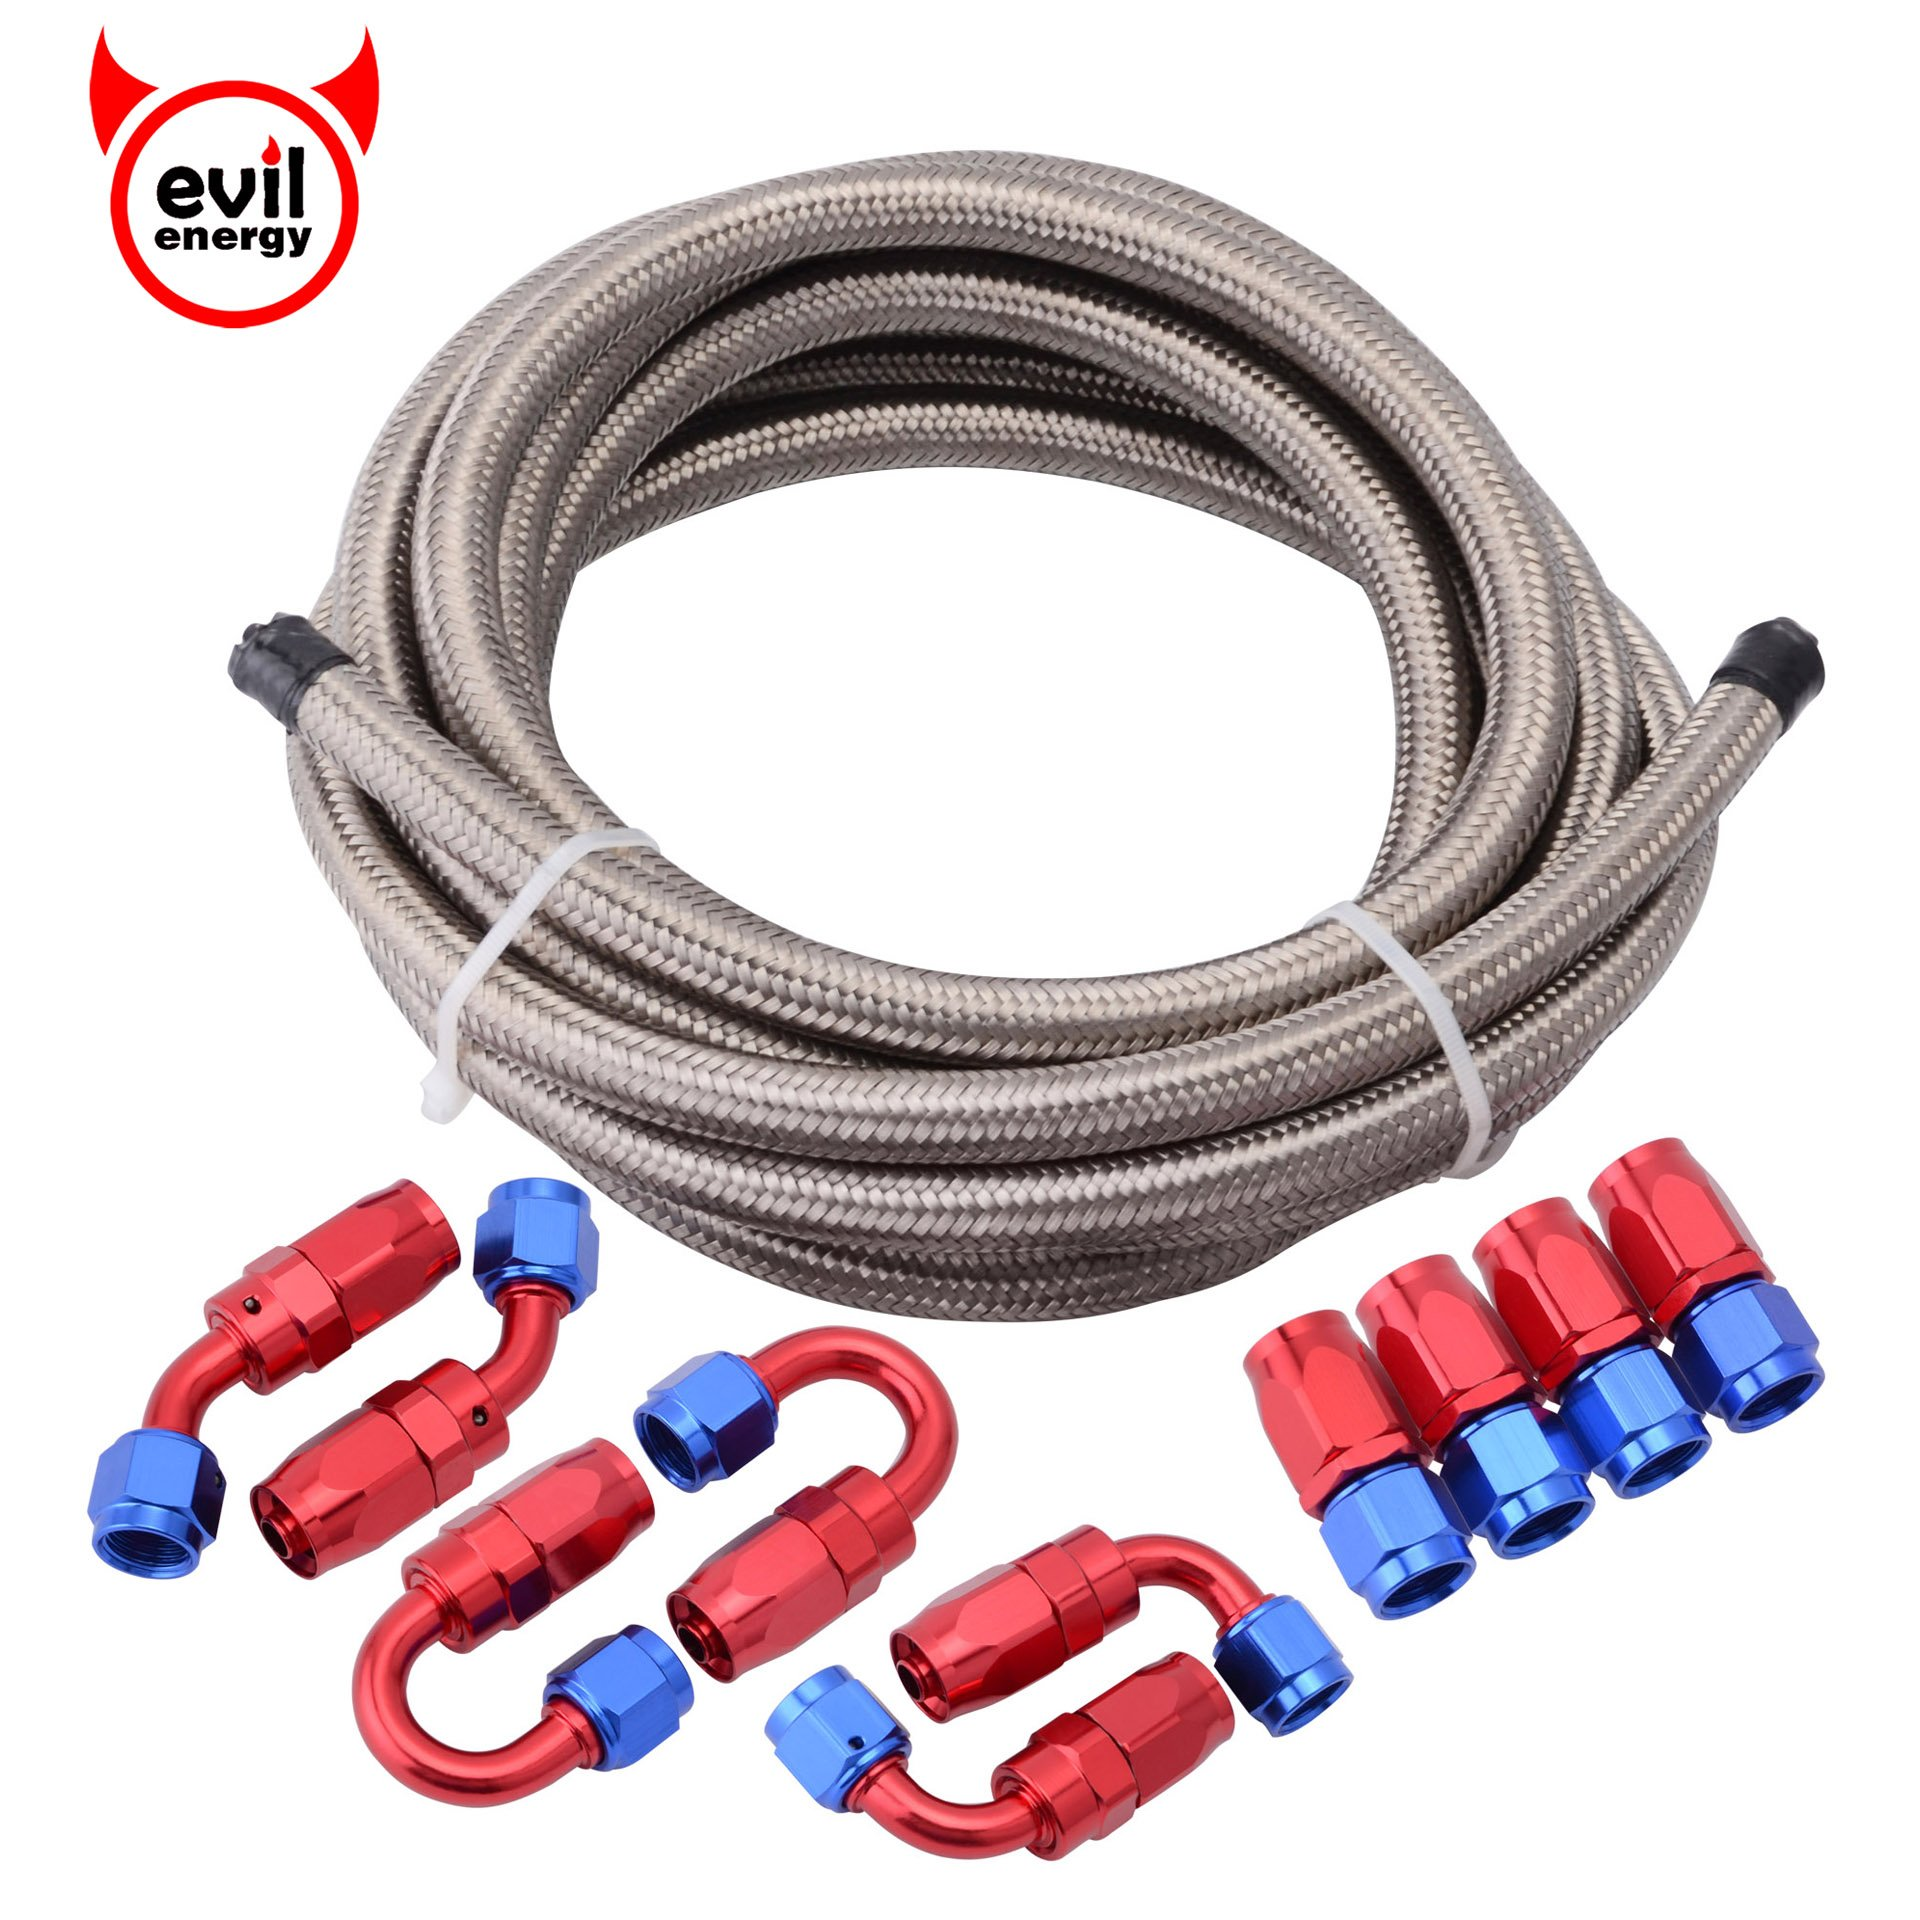 813umgYmjIL._SR500500_ fuel line kits amazon com